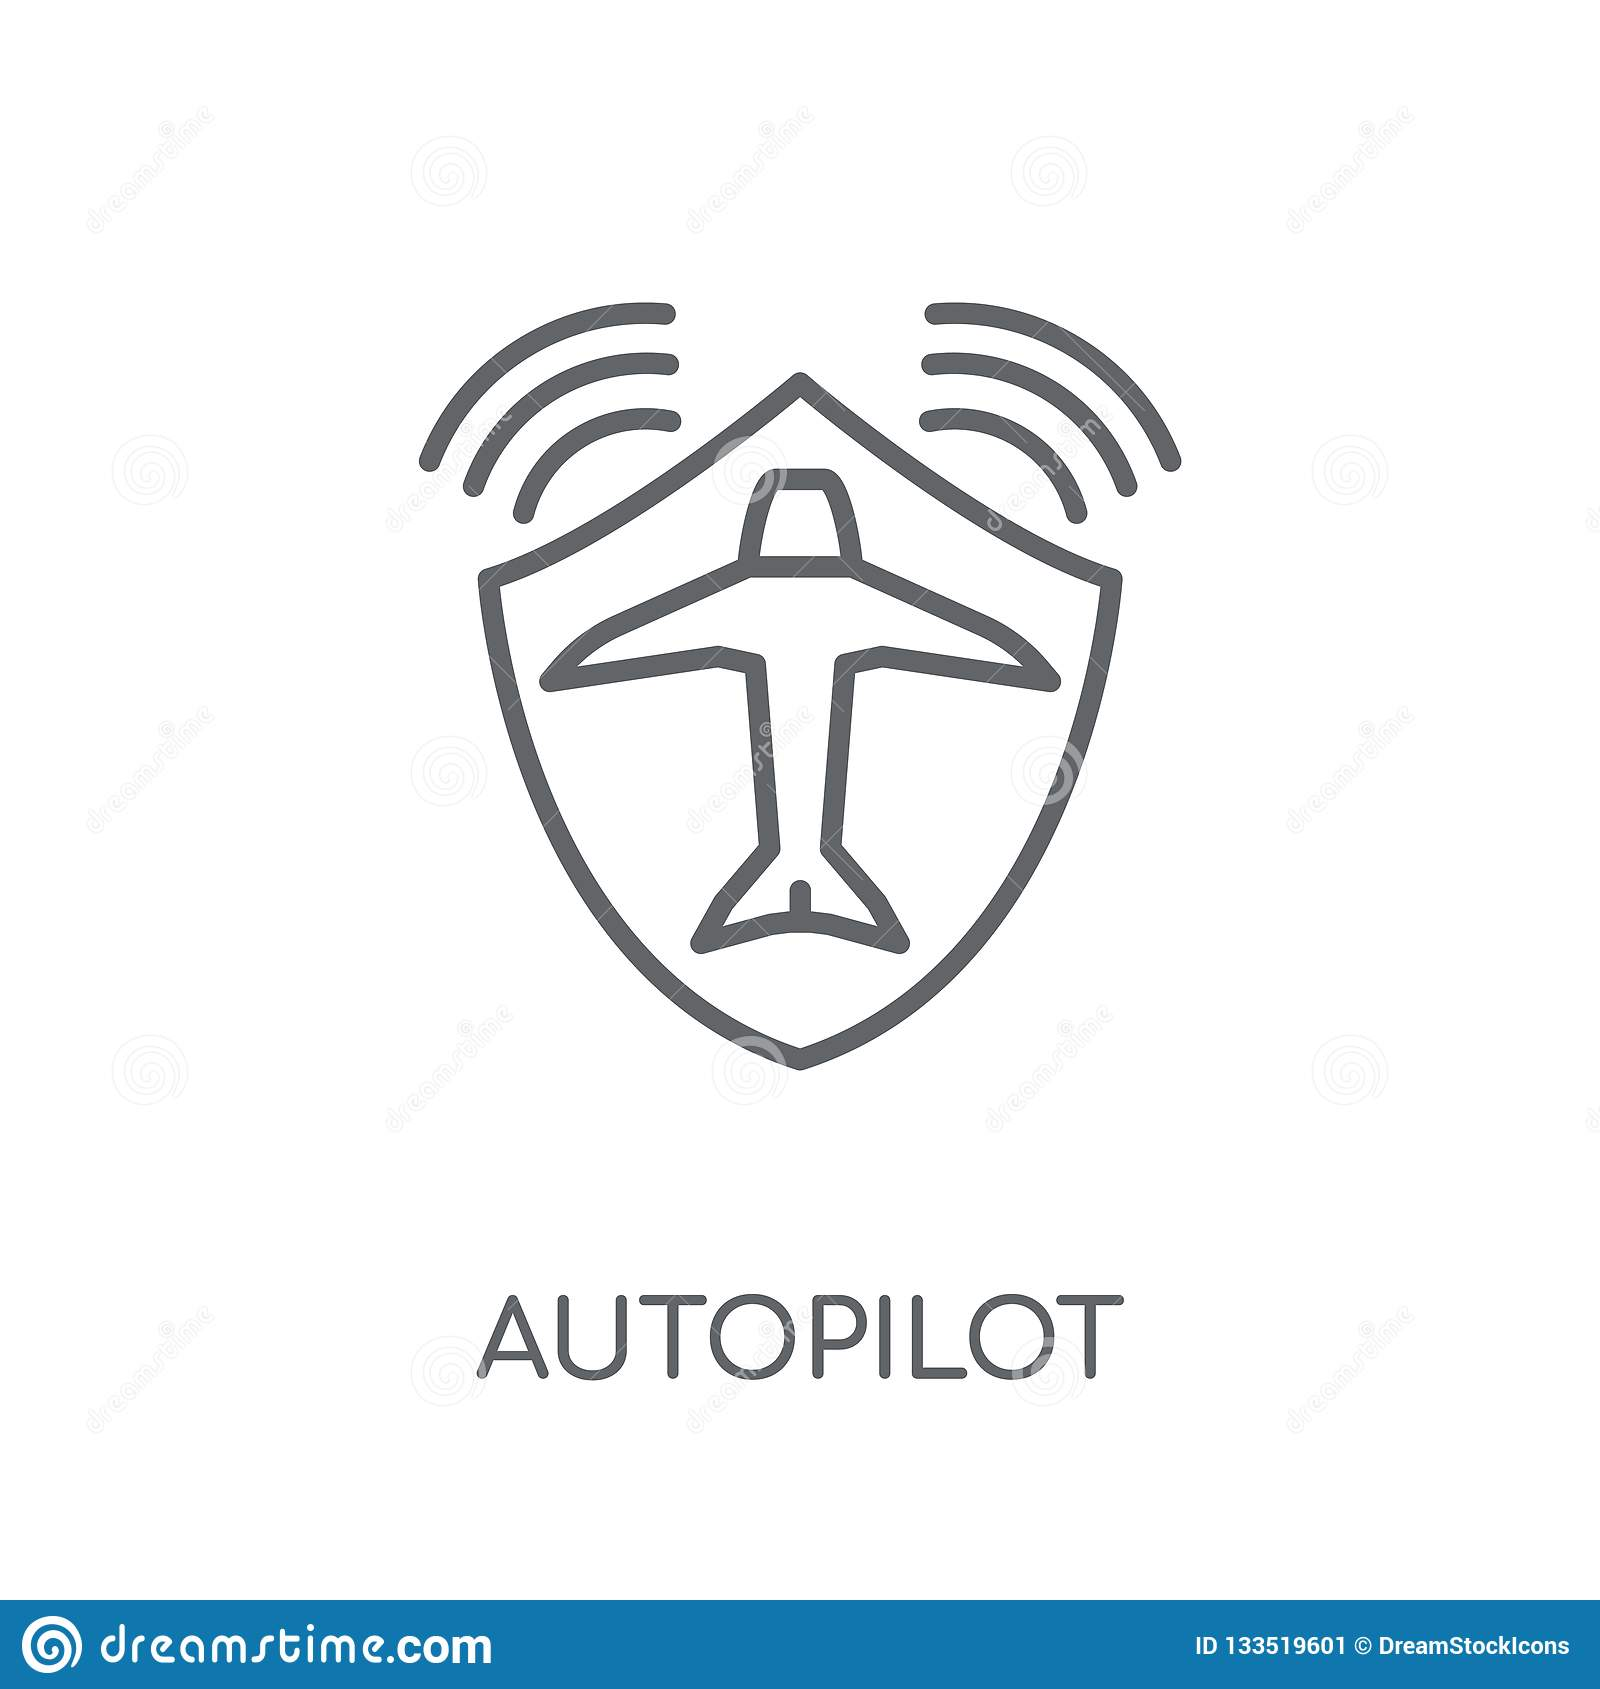 autopilot linear icon. Modern outline autopilot logo concept on